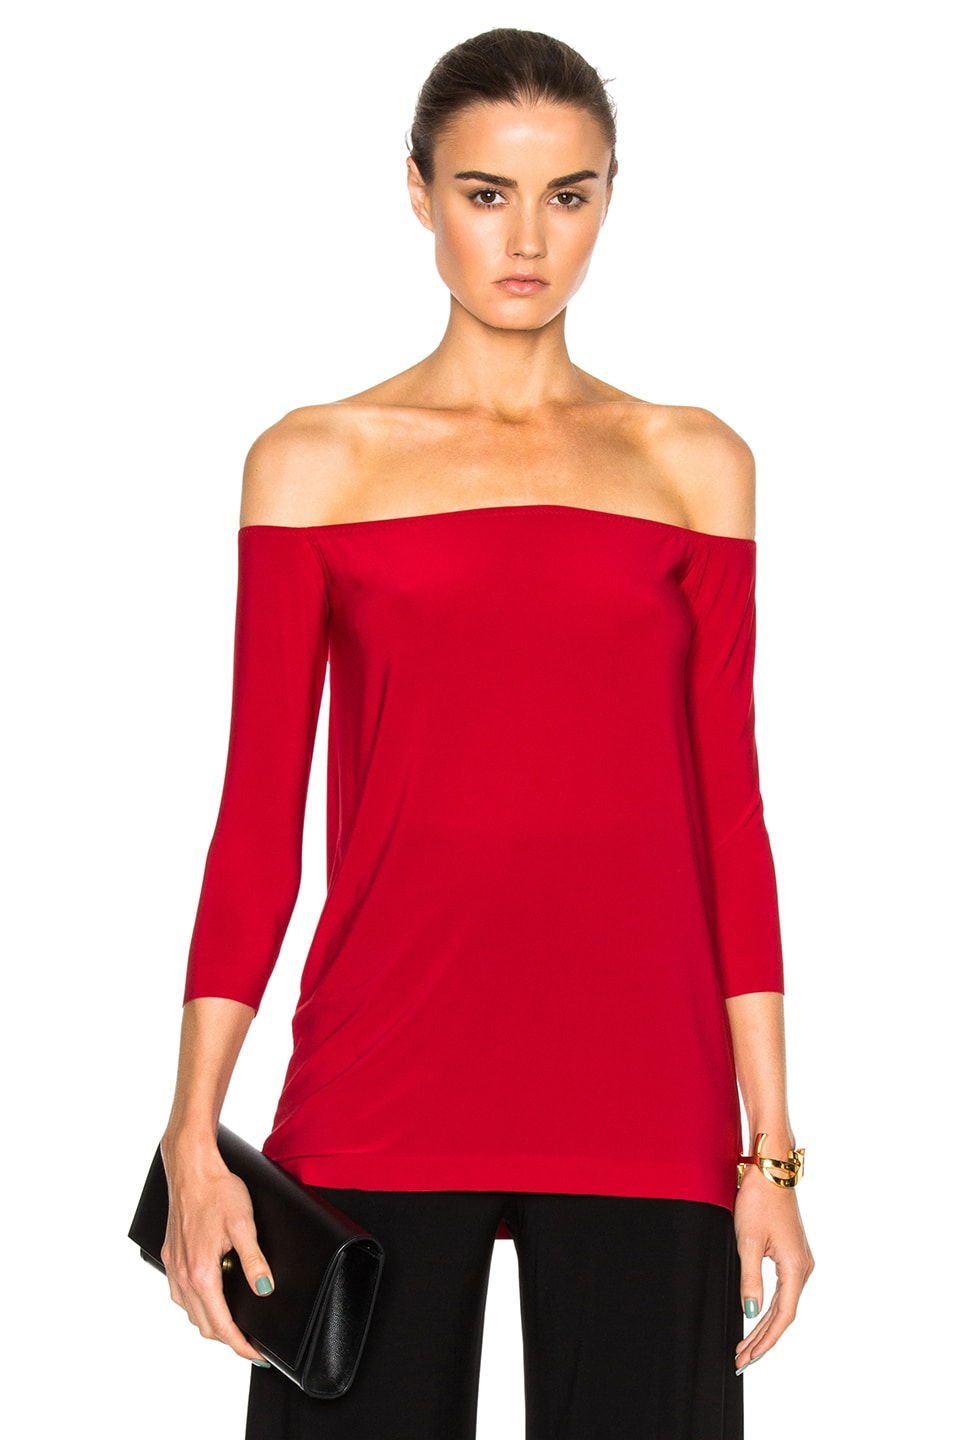 acf3ba05f38 Image 1 of Norma Kamali Off The Shoulder Top in Red